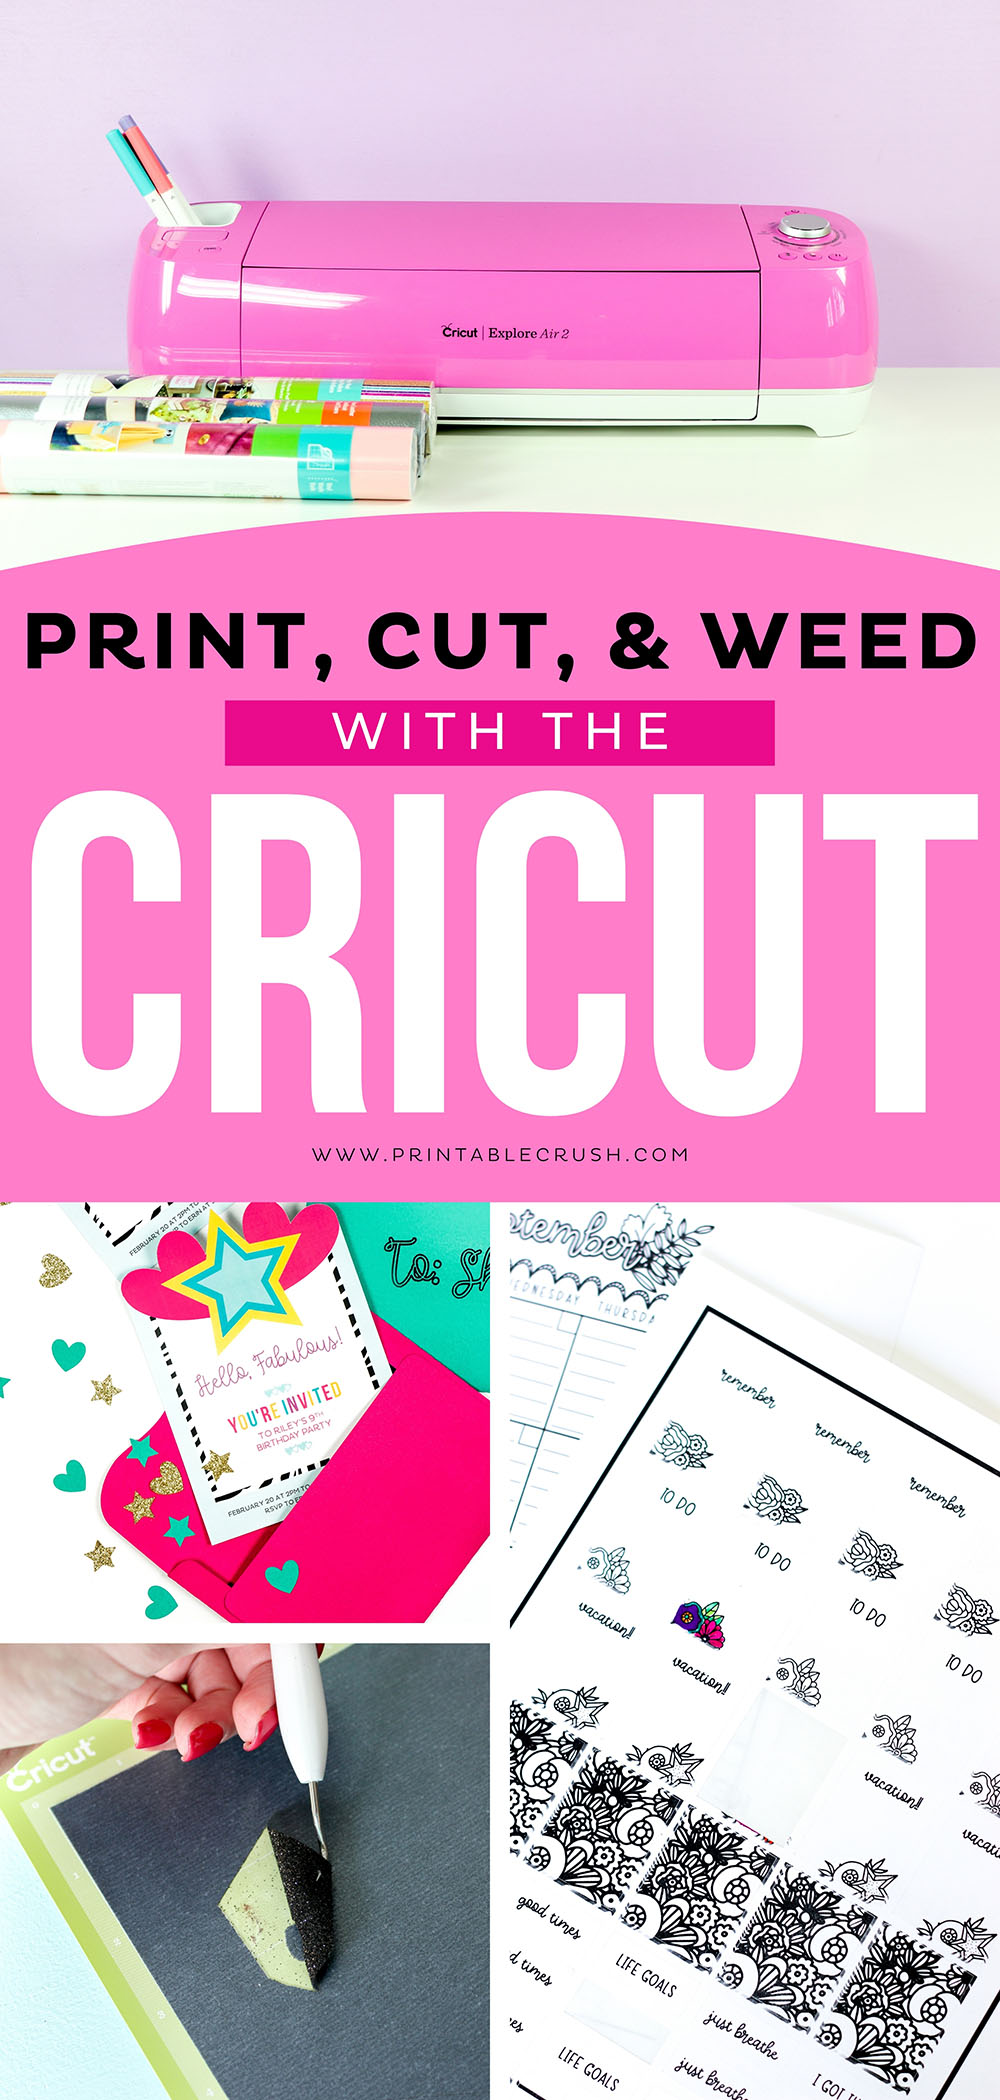 What does it mean to print, cut, and weed with the Cricut? Follow this tutorial to learn all the basic functions of a Cricut machine. #cricut #cricutmade via @printablecrush